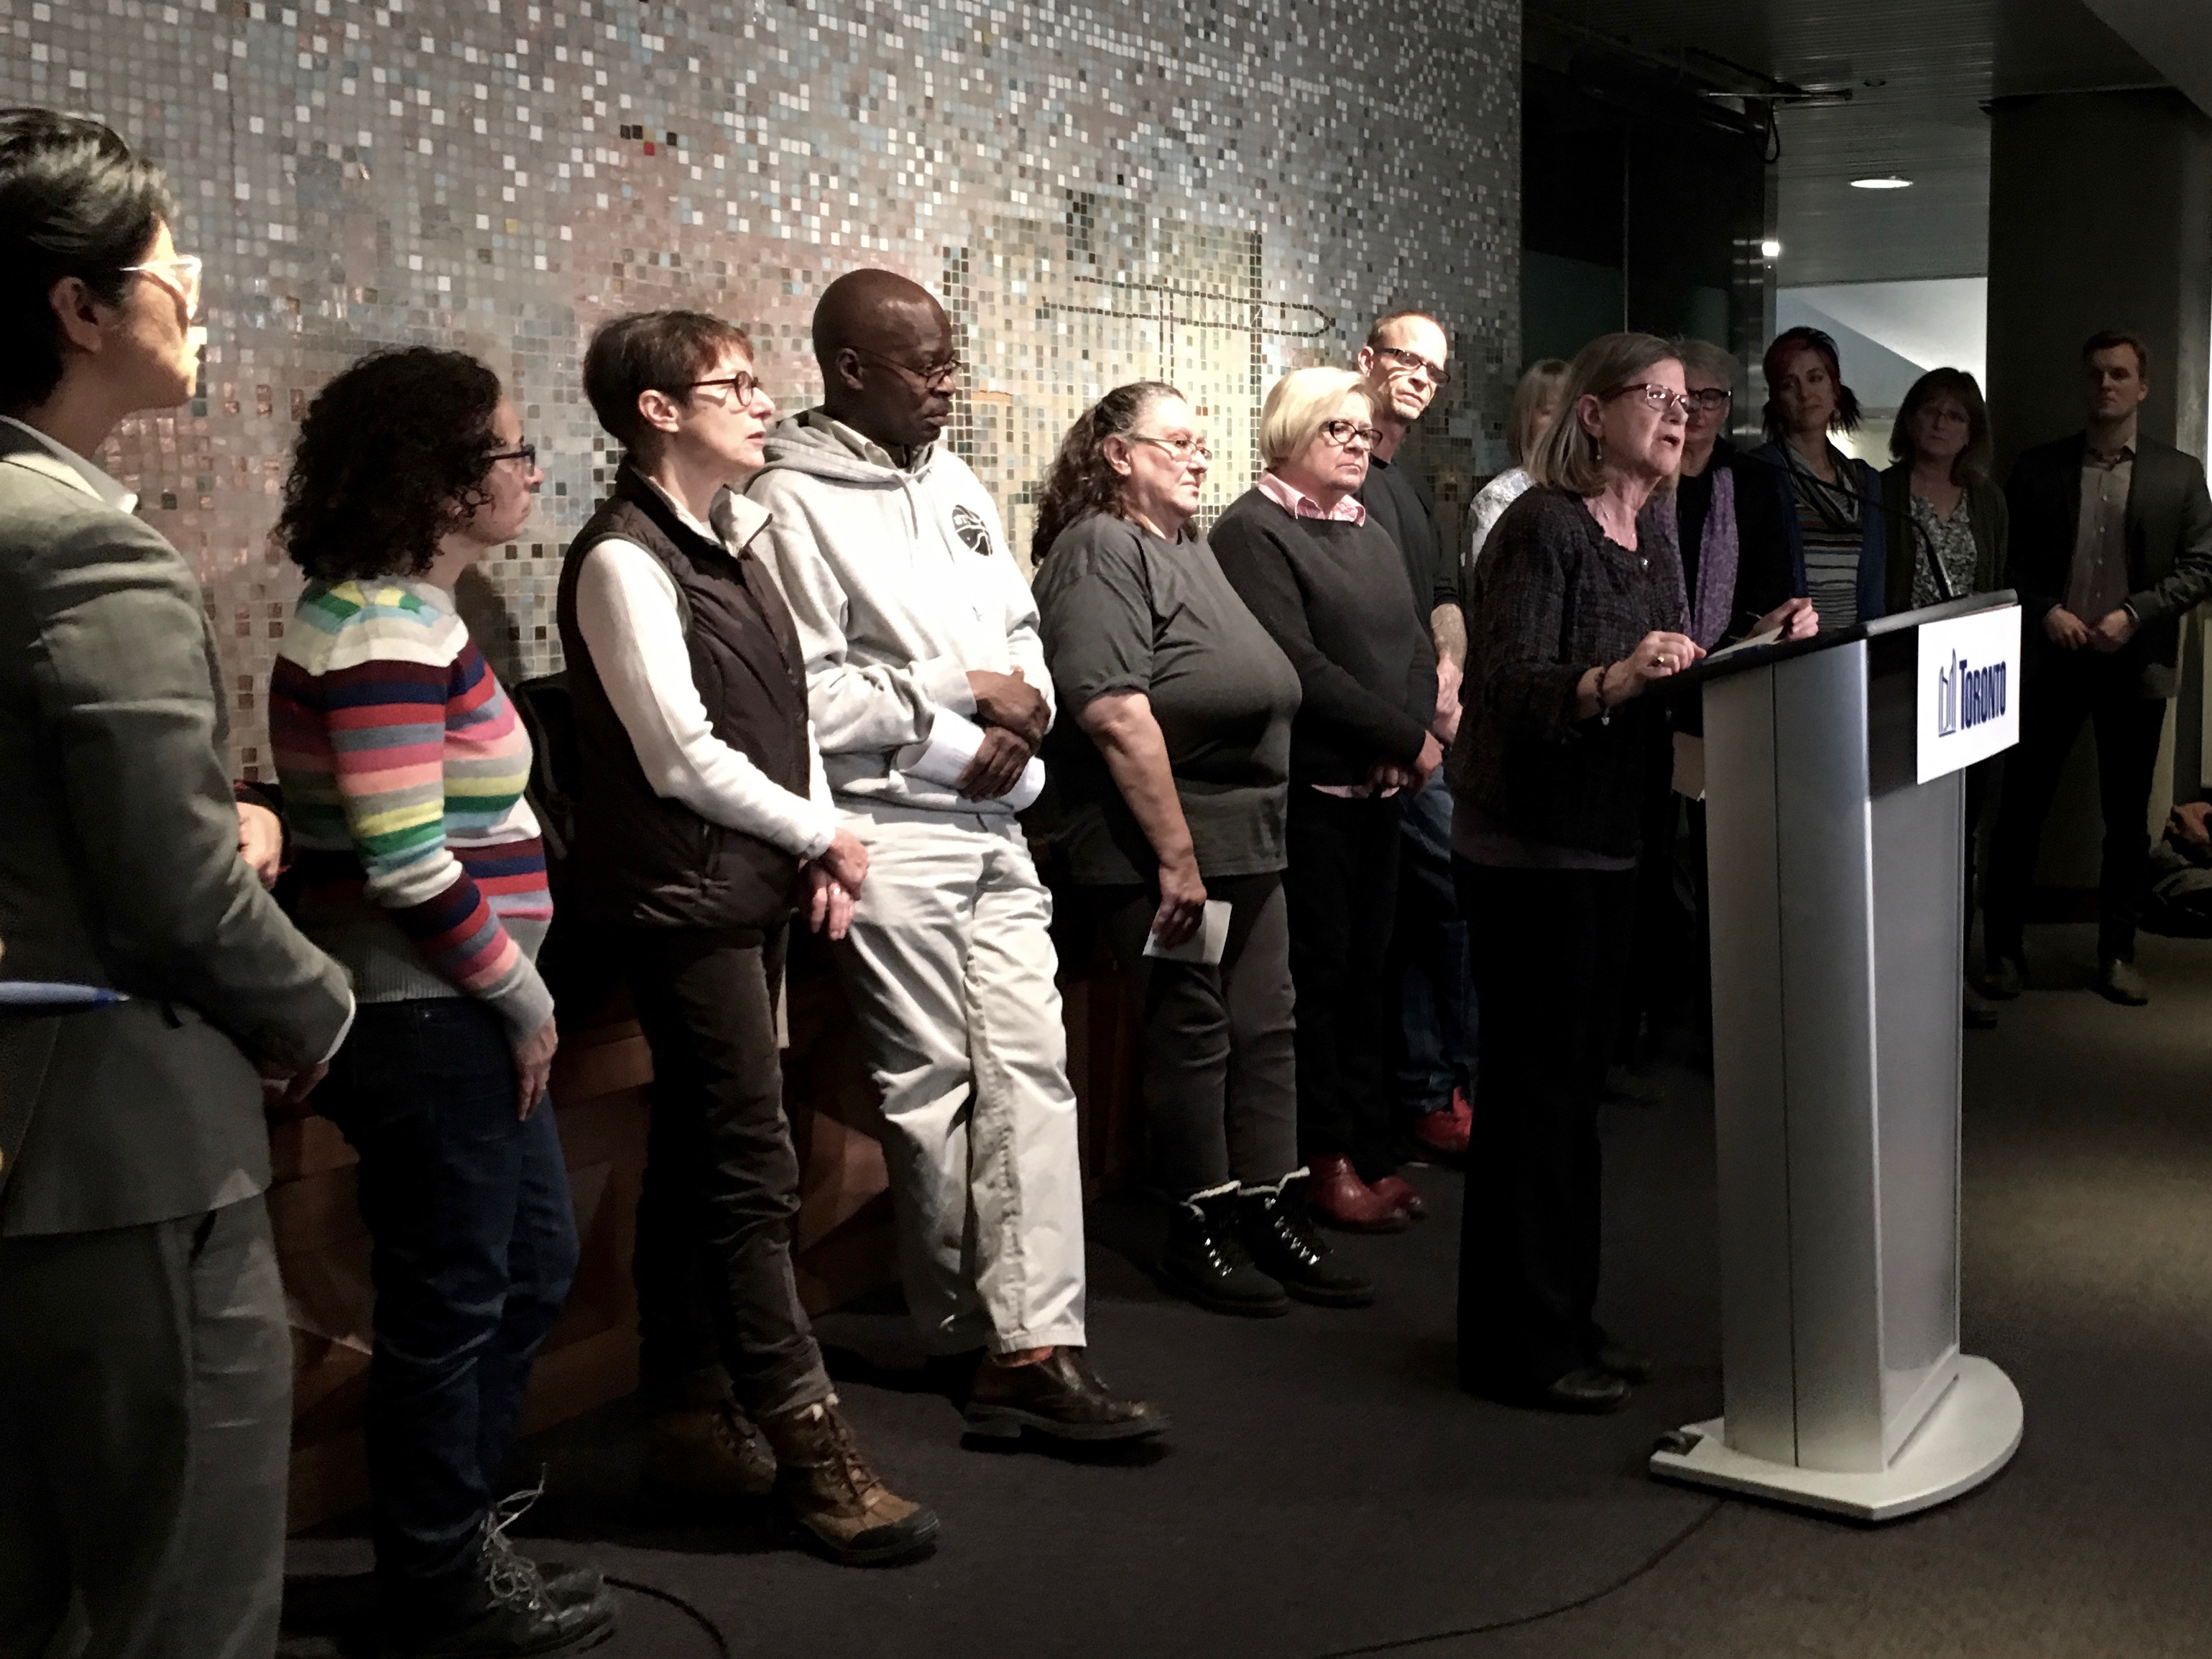 Advocates For Homeless People Decry Lack Of Mental Health Resources